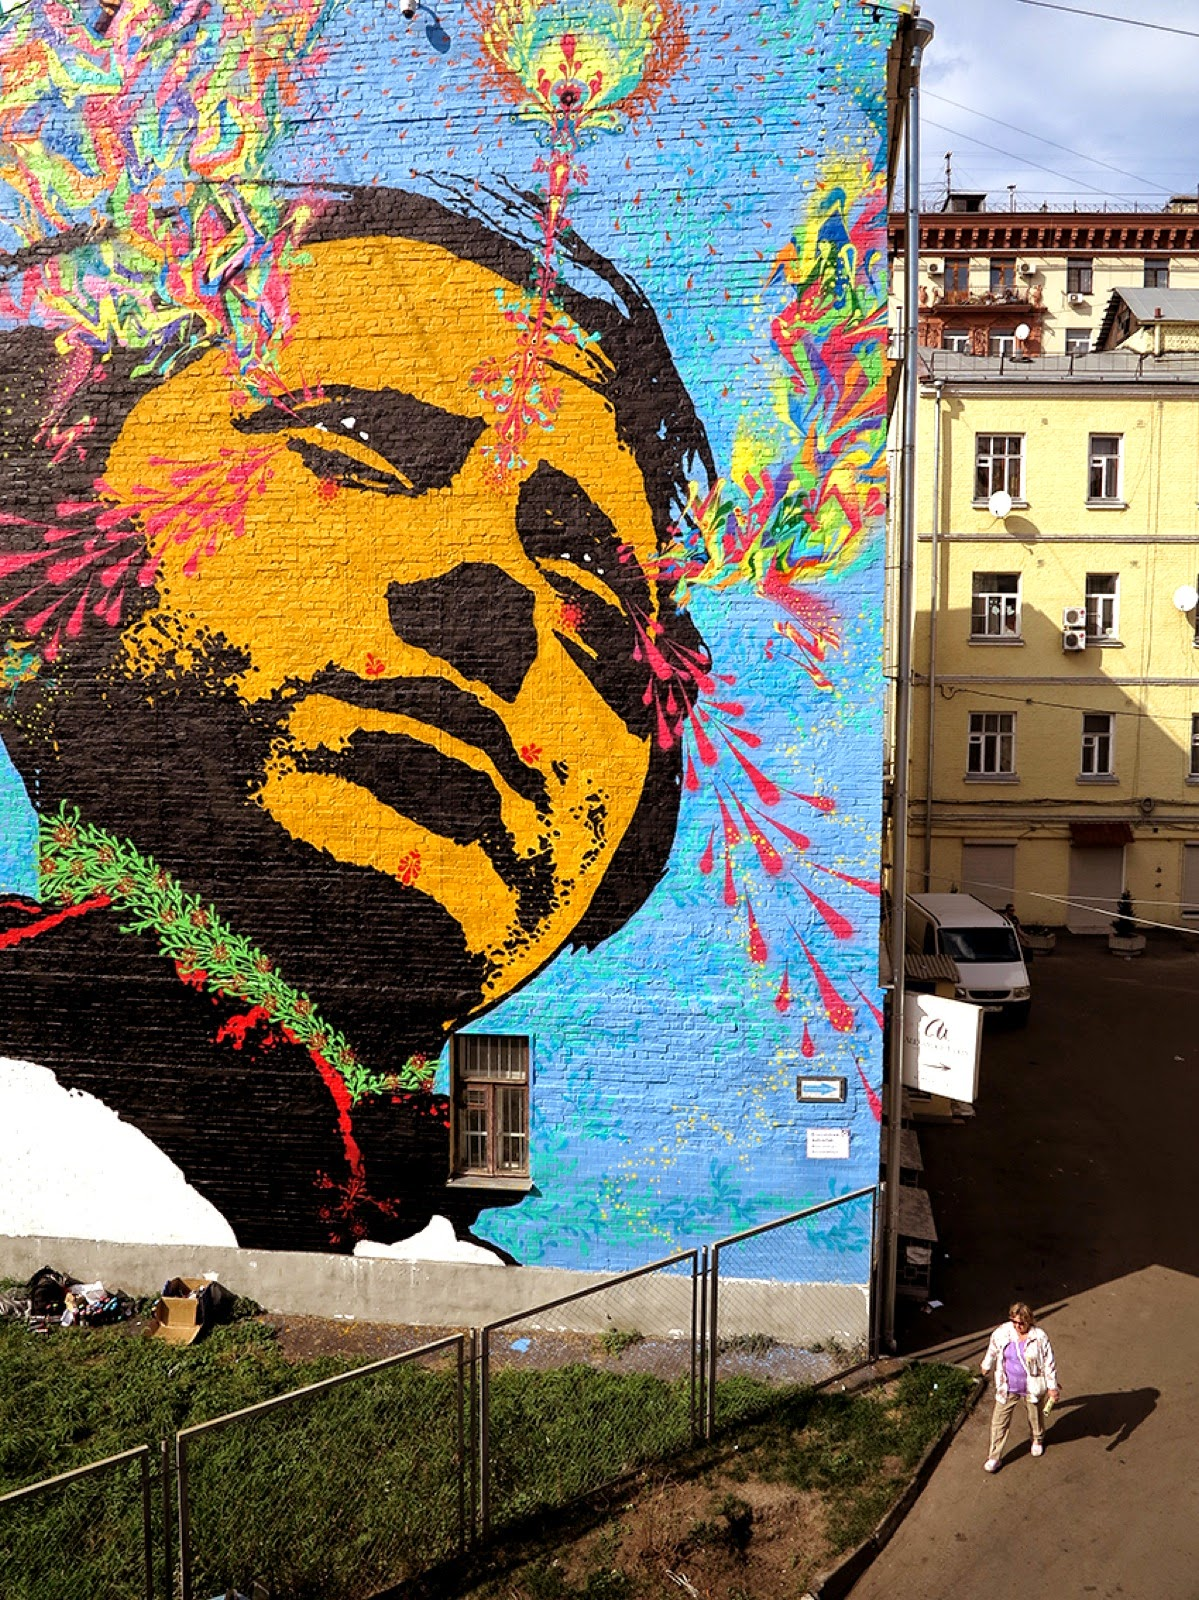 Our friend Stinkfish is currently in Russia where he was invited by the Most Festival to paint on the streets of Moscow.